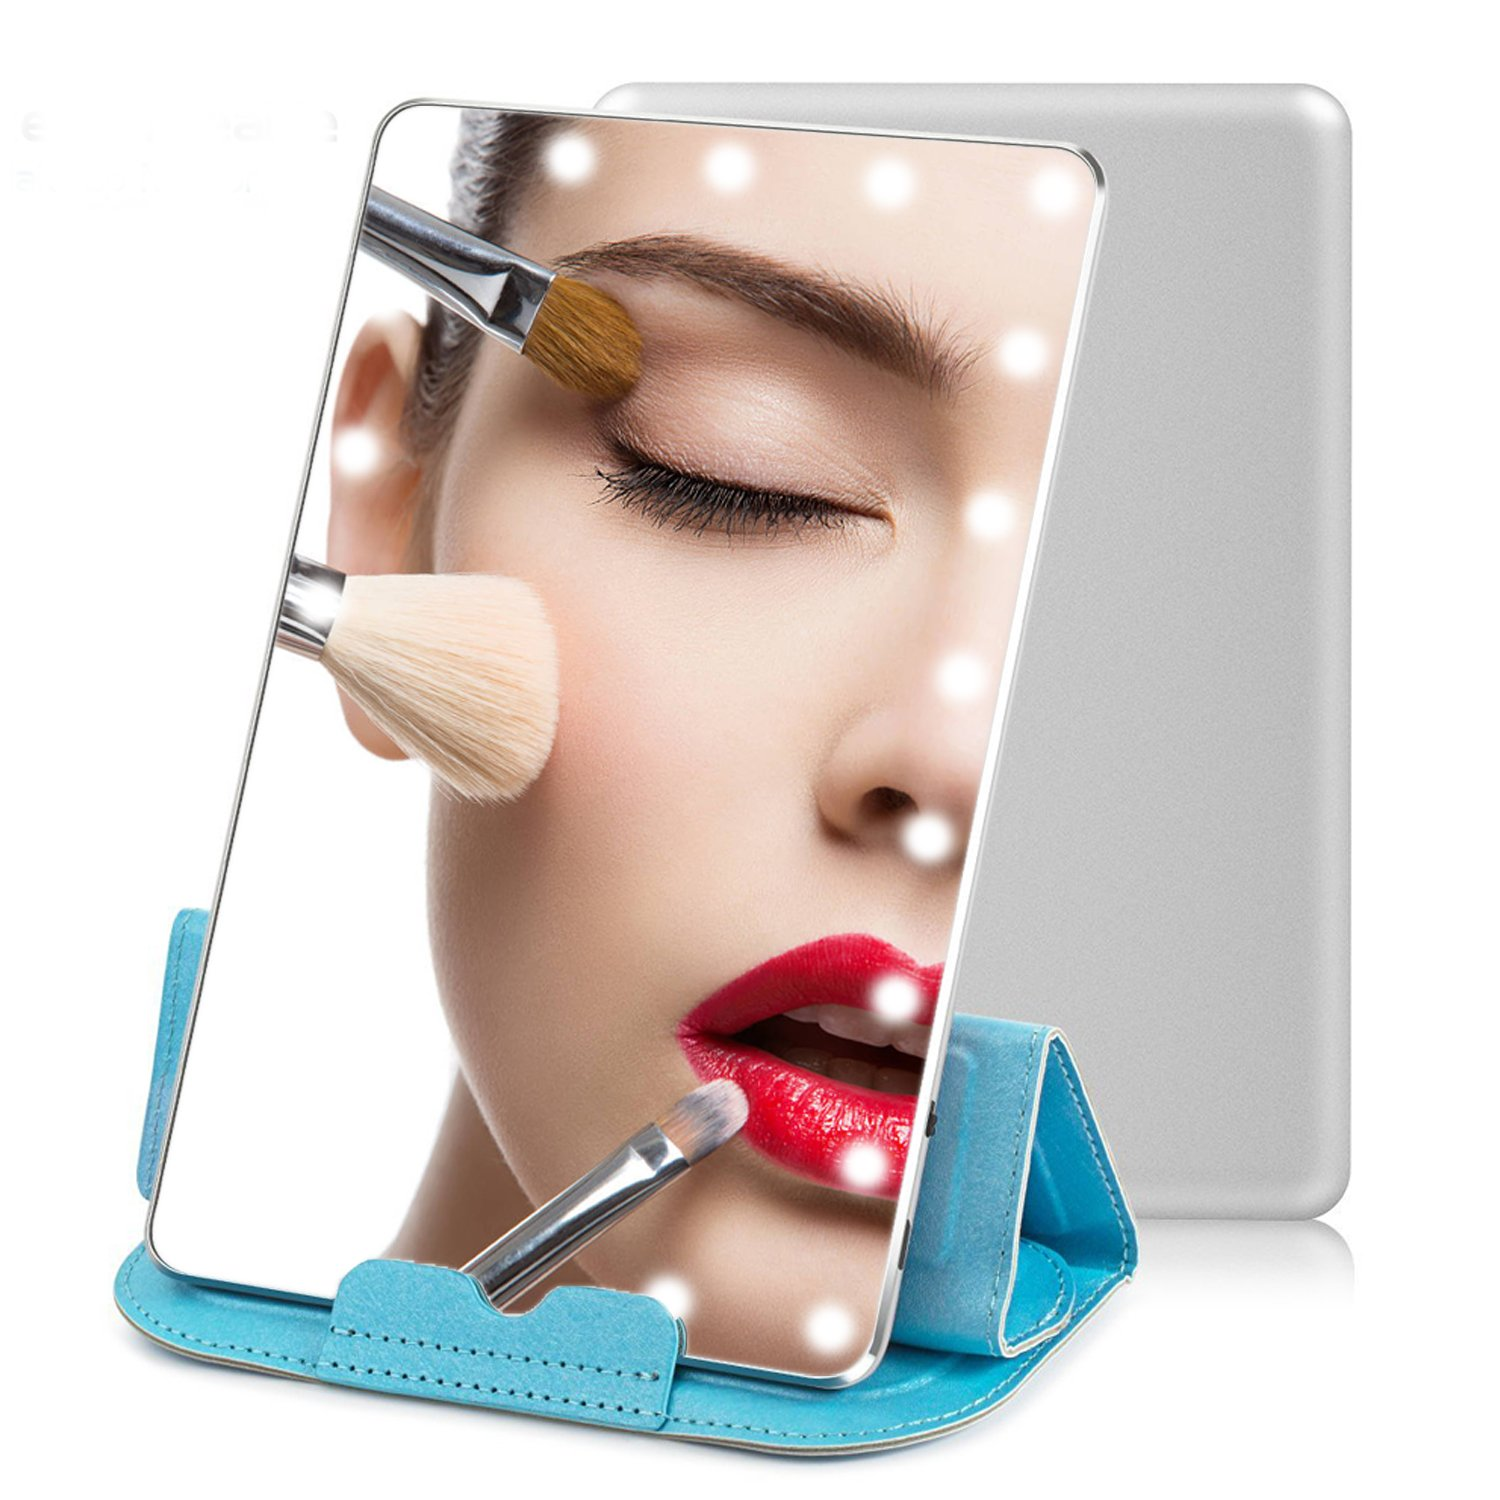 Lighted Makeup Mirror, 7.9'' Daylight LED Travel Vanity Mirror, Dimmable Natural LED Lights & Touch Screen ,Portable Cosmetic Mirror for Purse, Chargeable Travel Illuminated Compact Mirror with Stand